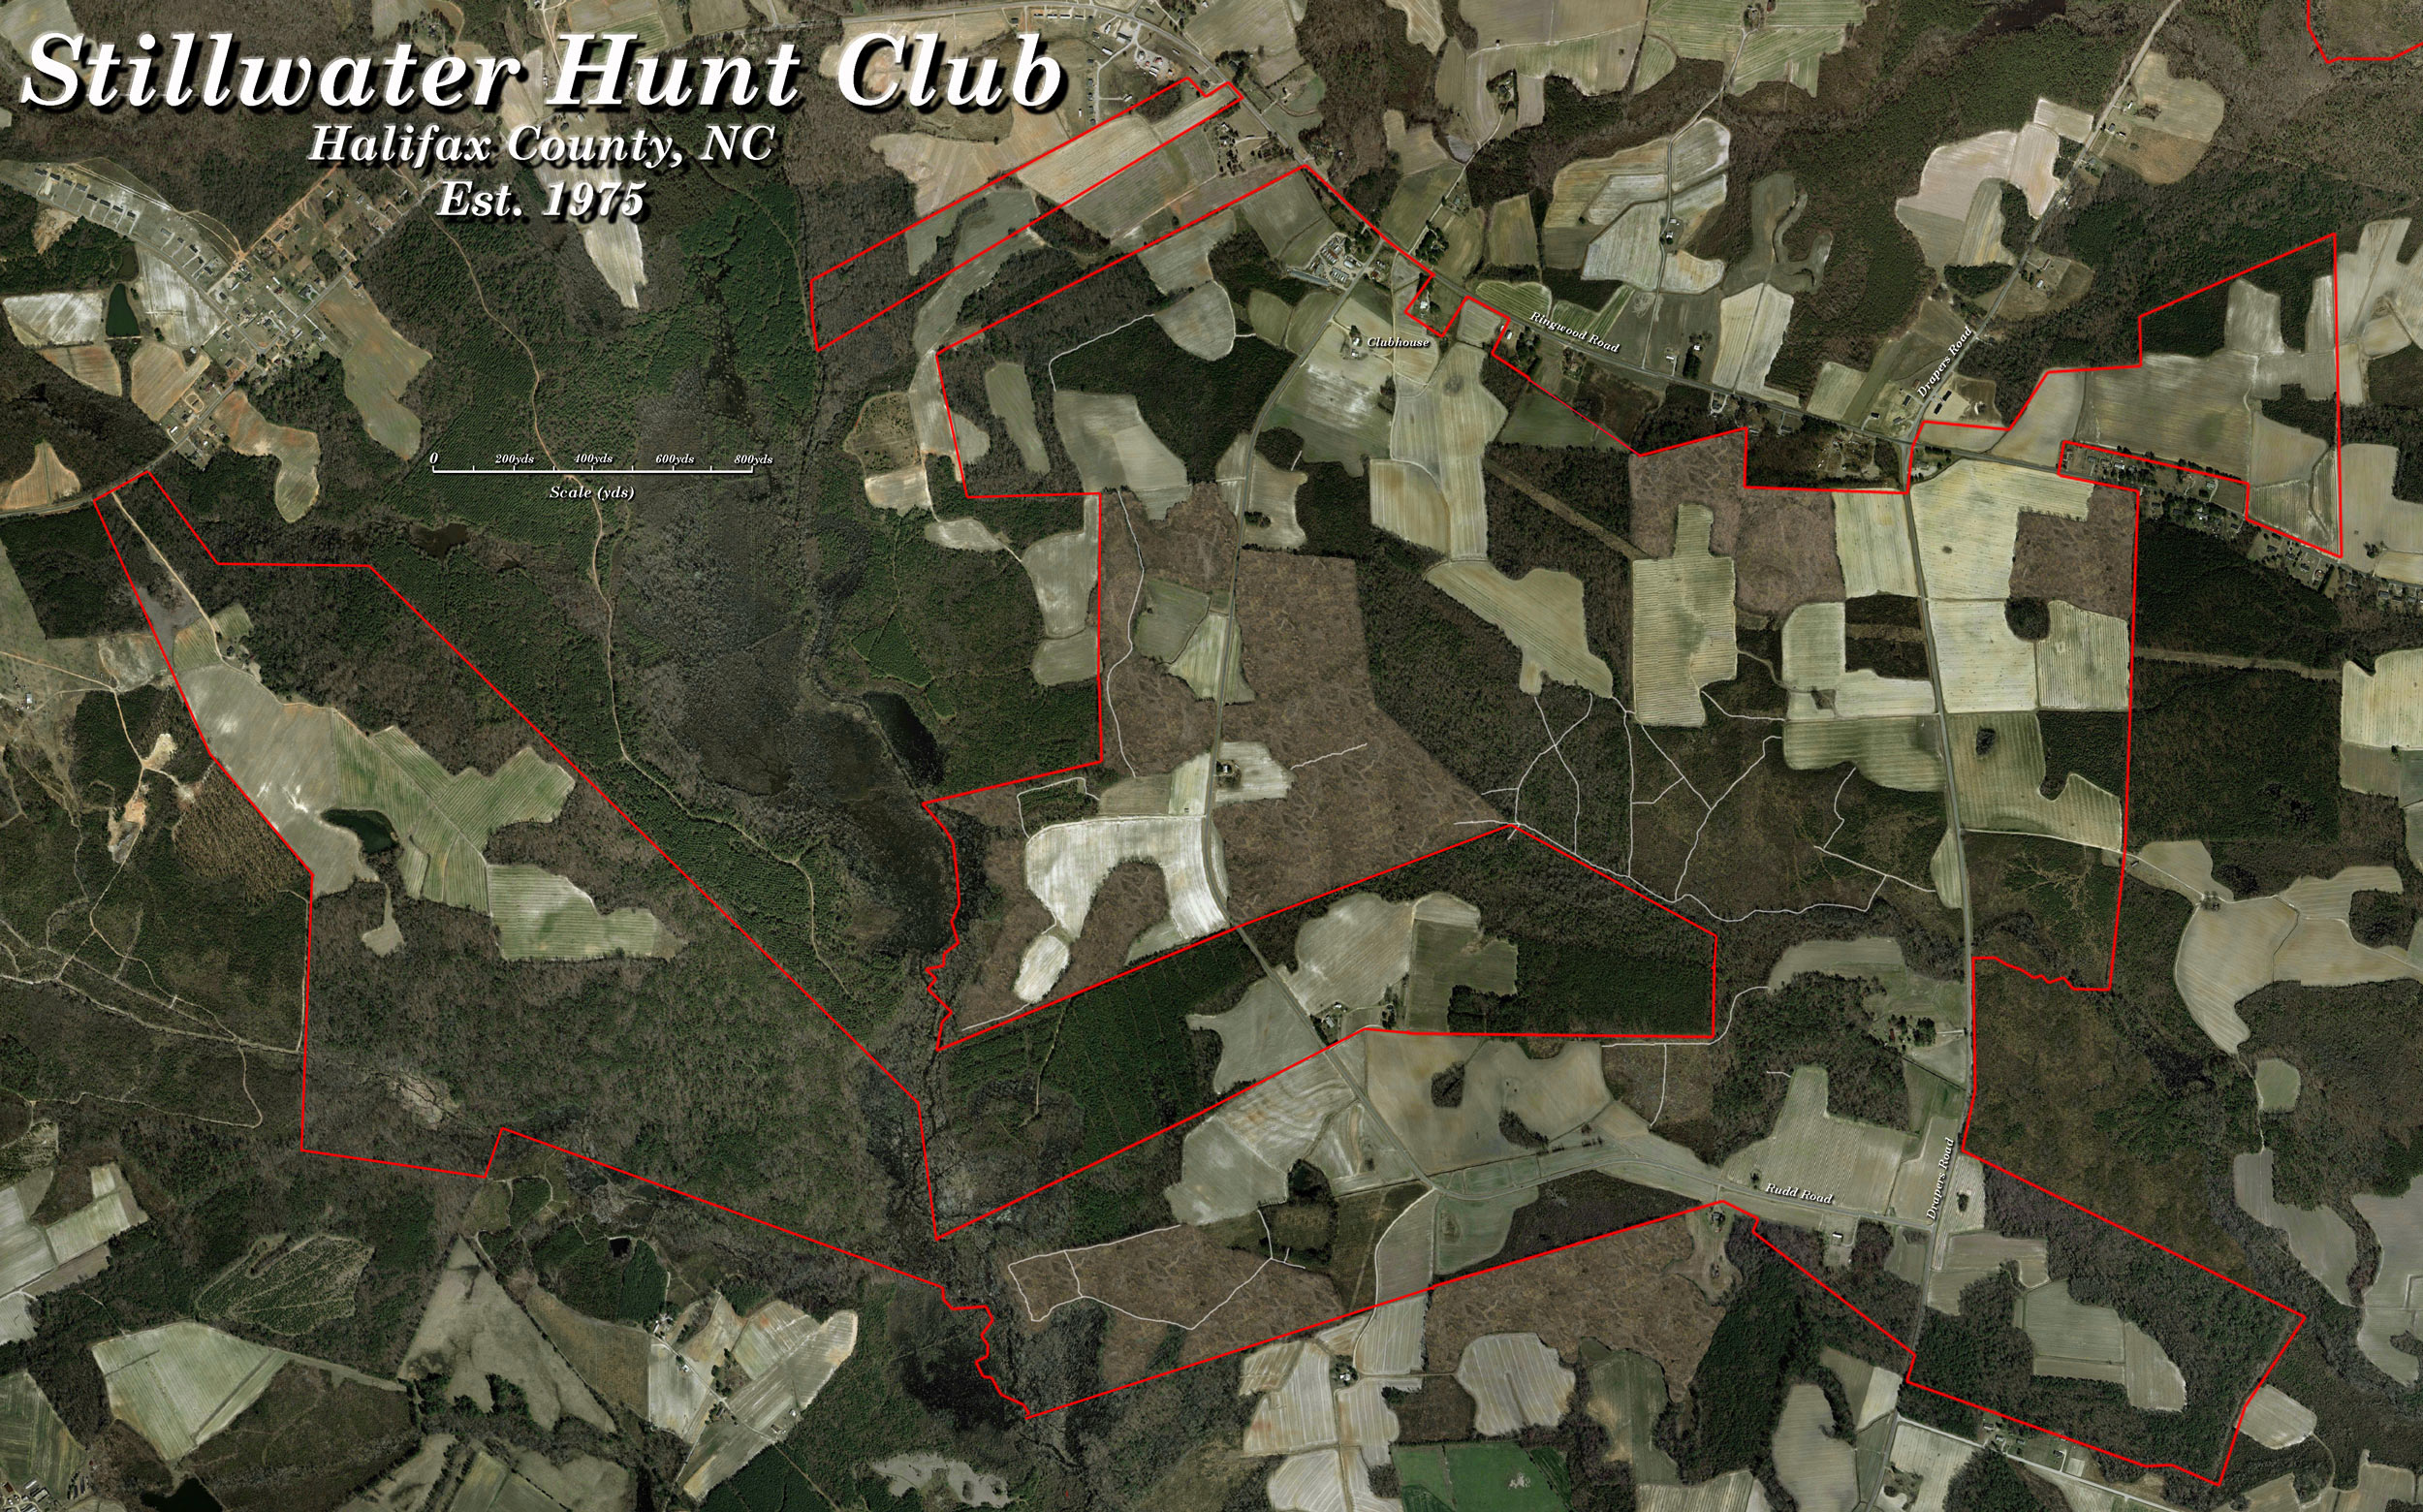 Stillwater Hunt Club - Main Farm Map